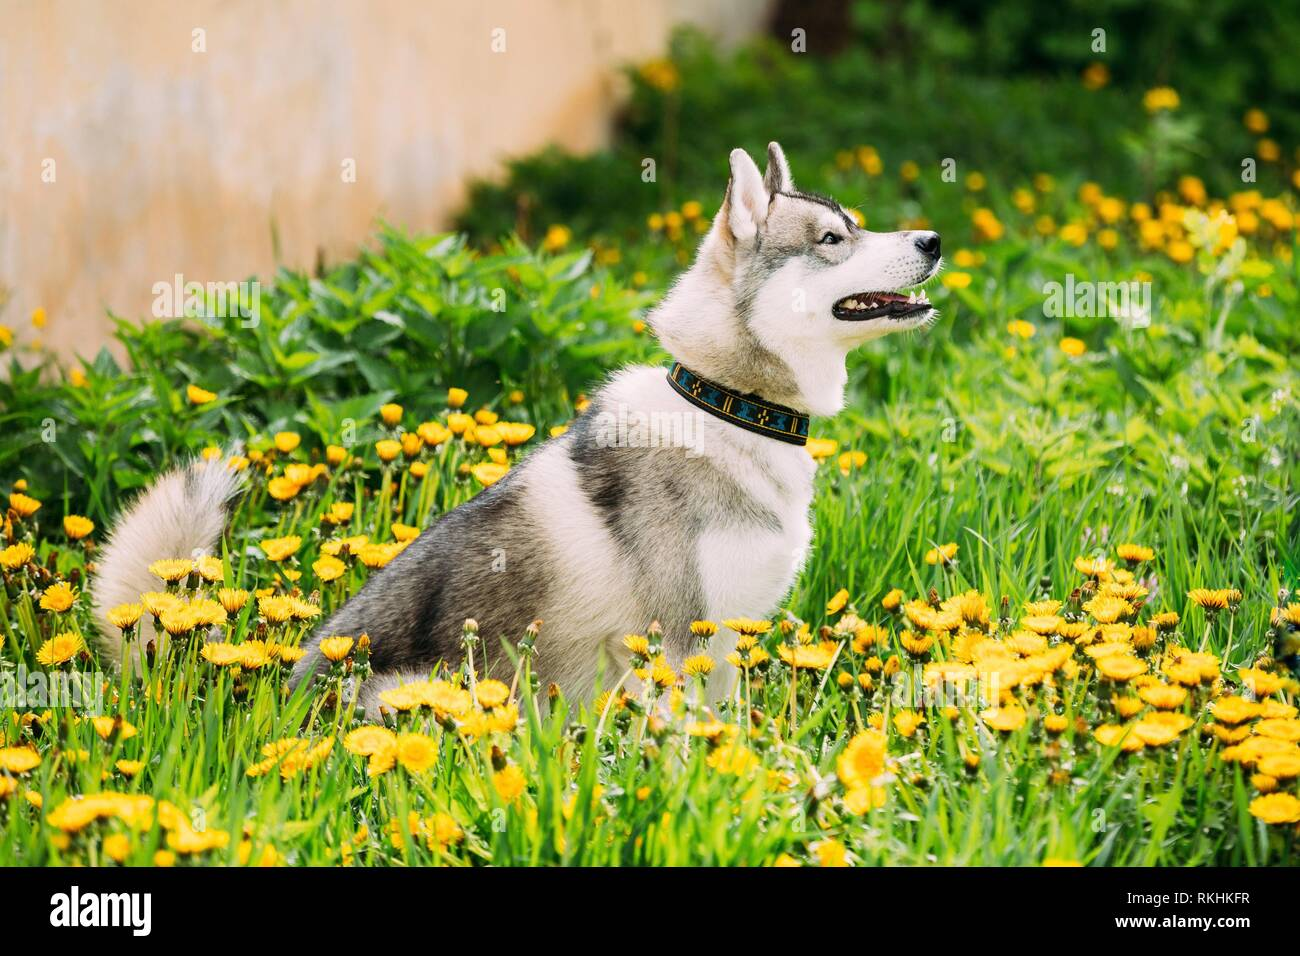 Obedient Funny Young Happy Husky Puppy Eskimo Dog Sitting In Grass And In Yellow Dandelions Outdoor. Spring Season. - Stock Image